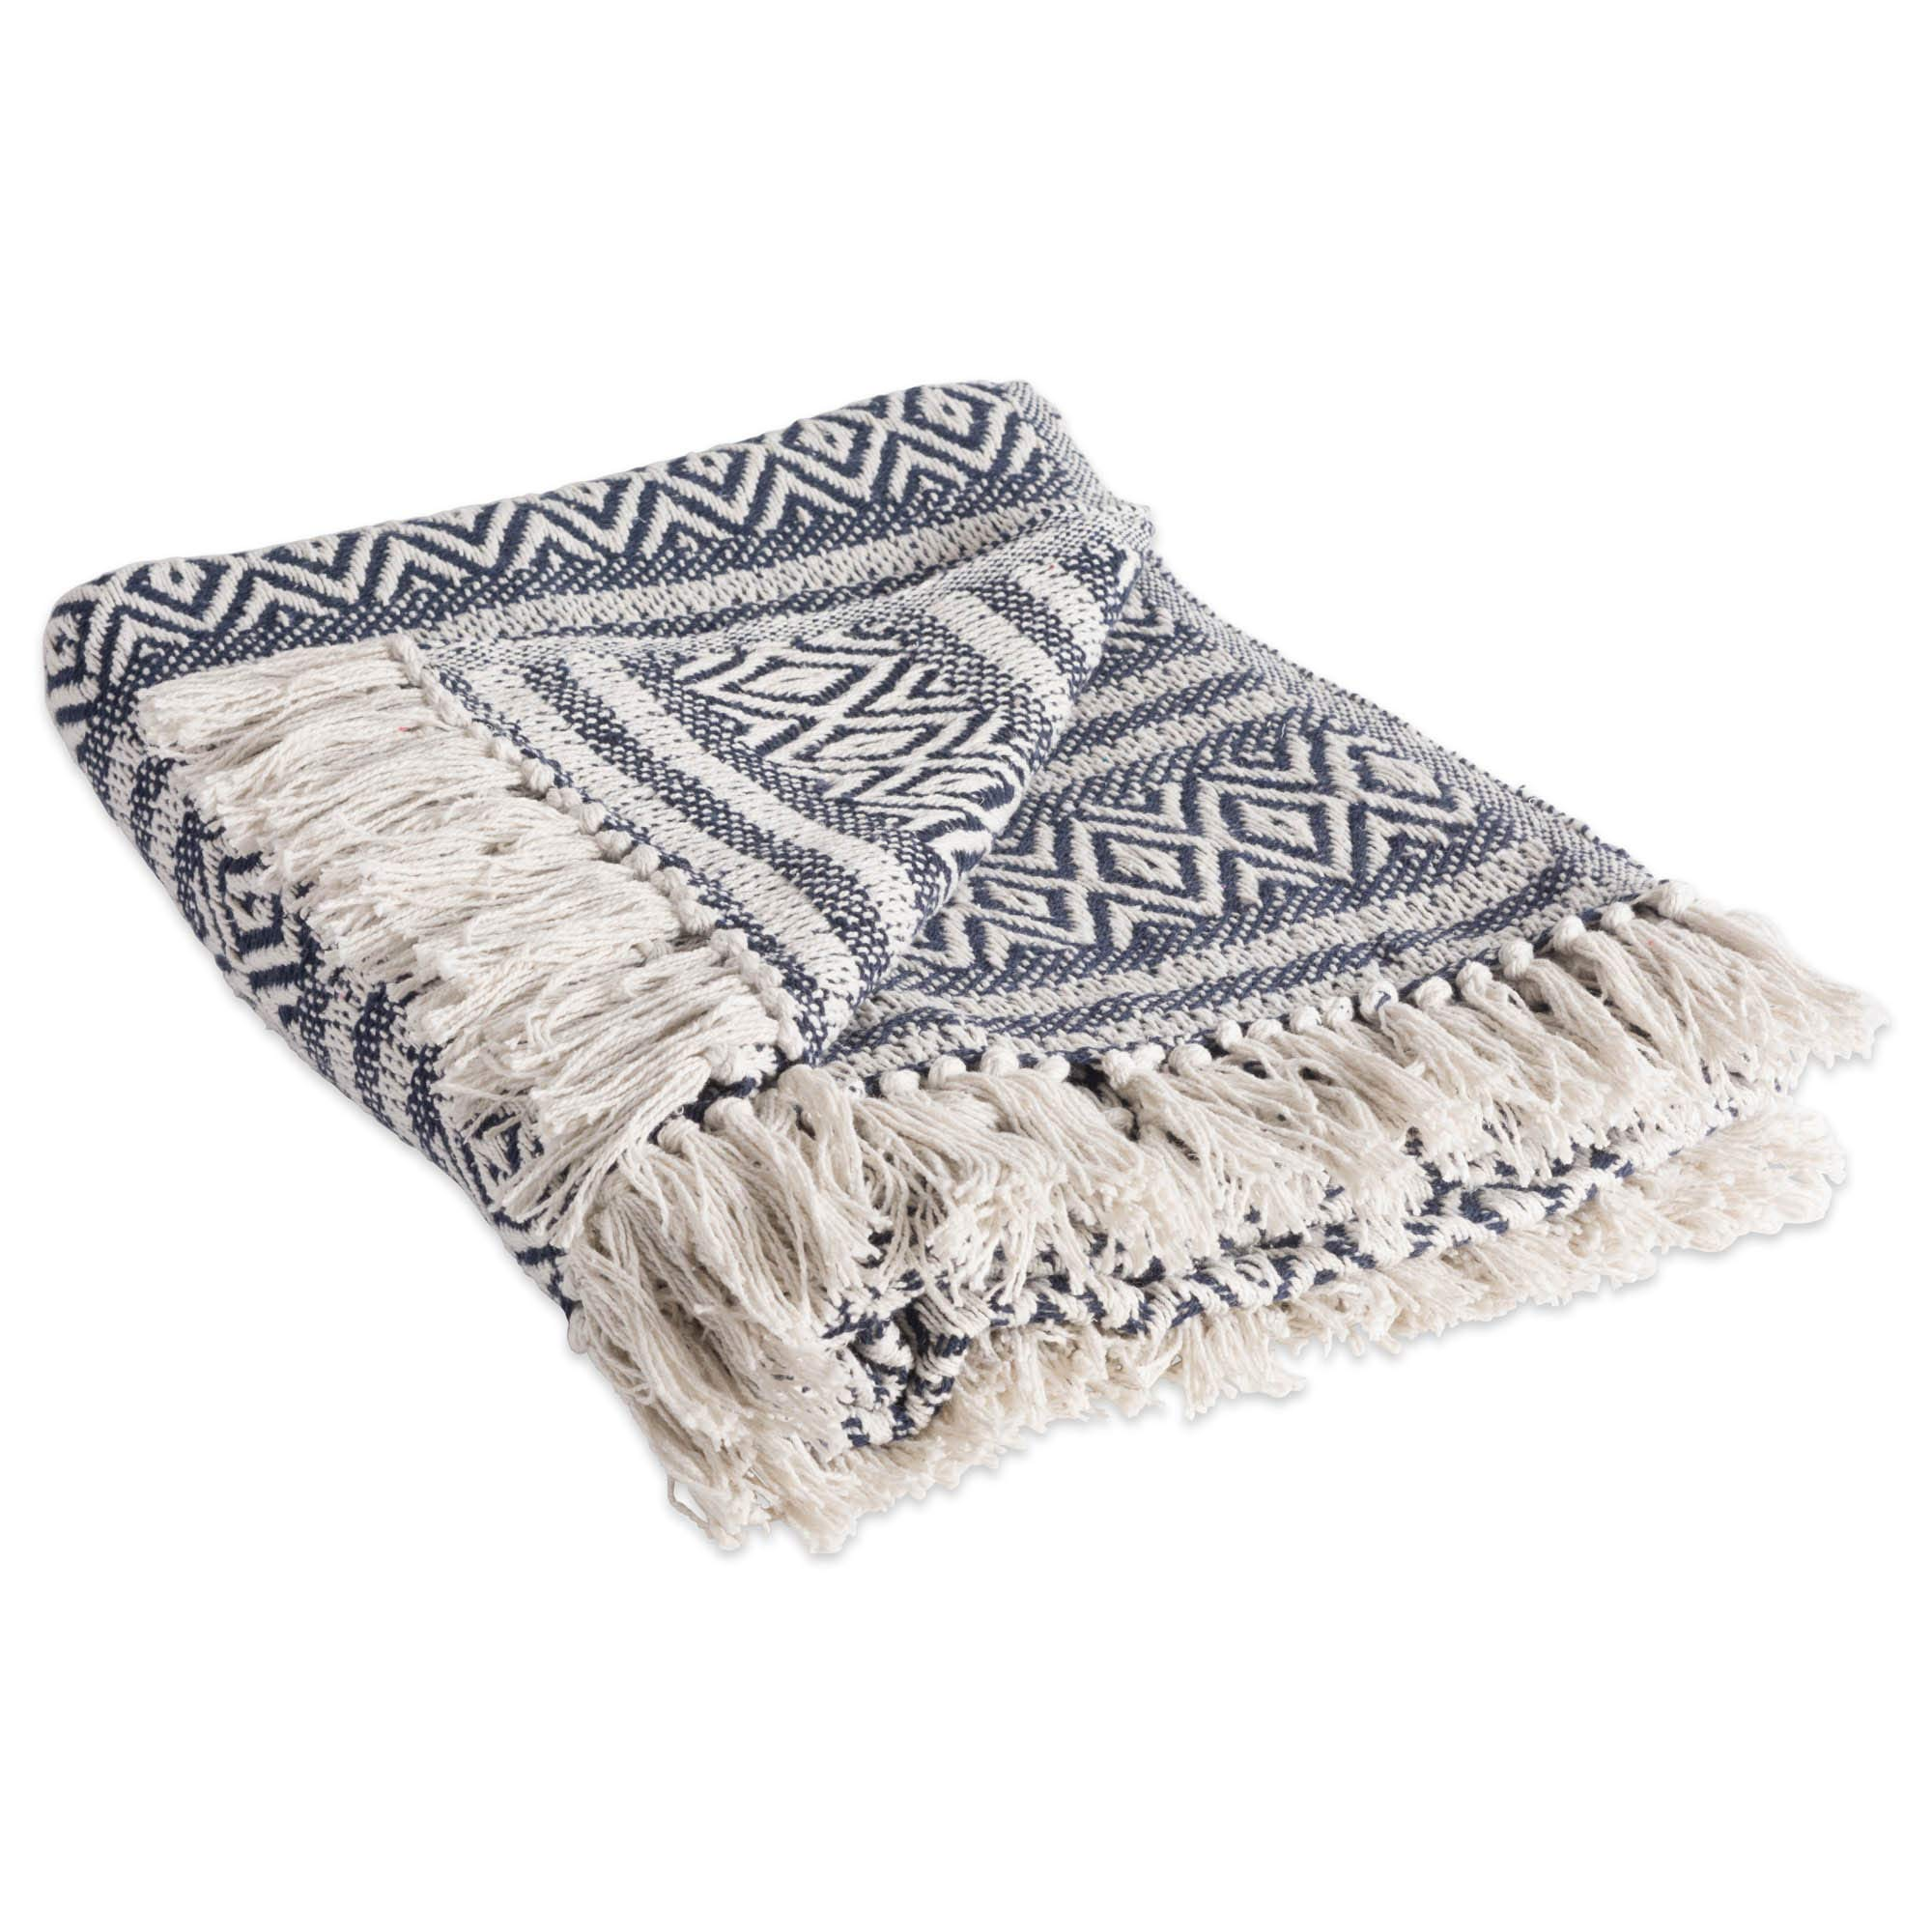 """DII Rustic Farmhouse Cotton Adobe Stripe Blanket Throw with Fringe For Chair, Couch, Picnic, Camping, Beach, & Everyday Use , 50 x 60"""" - Adobe Stripe Navy"""